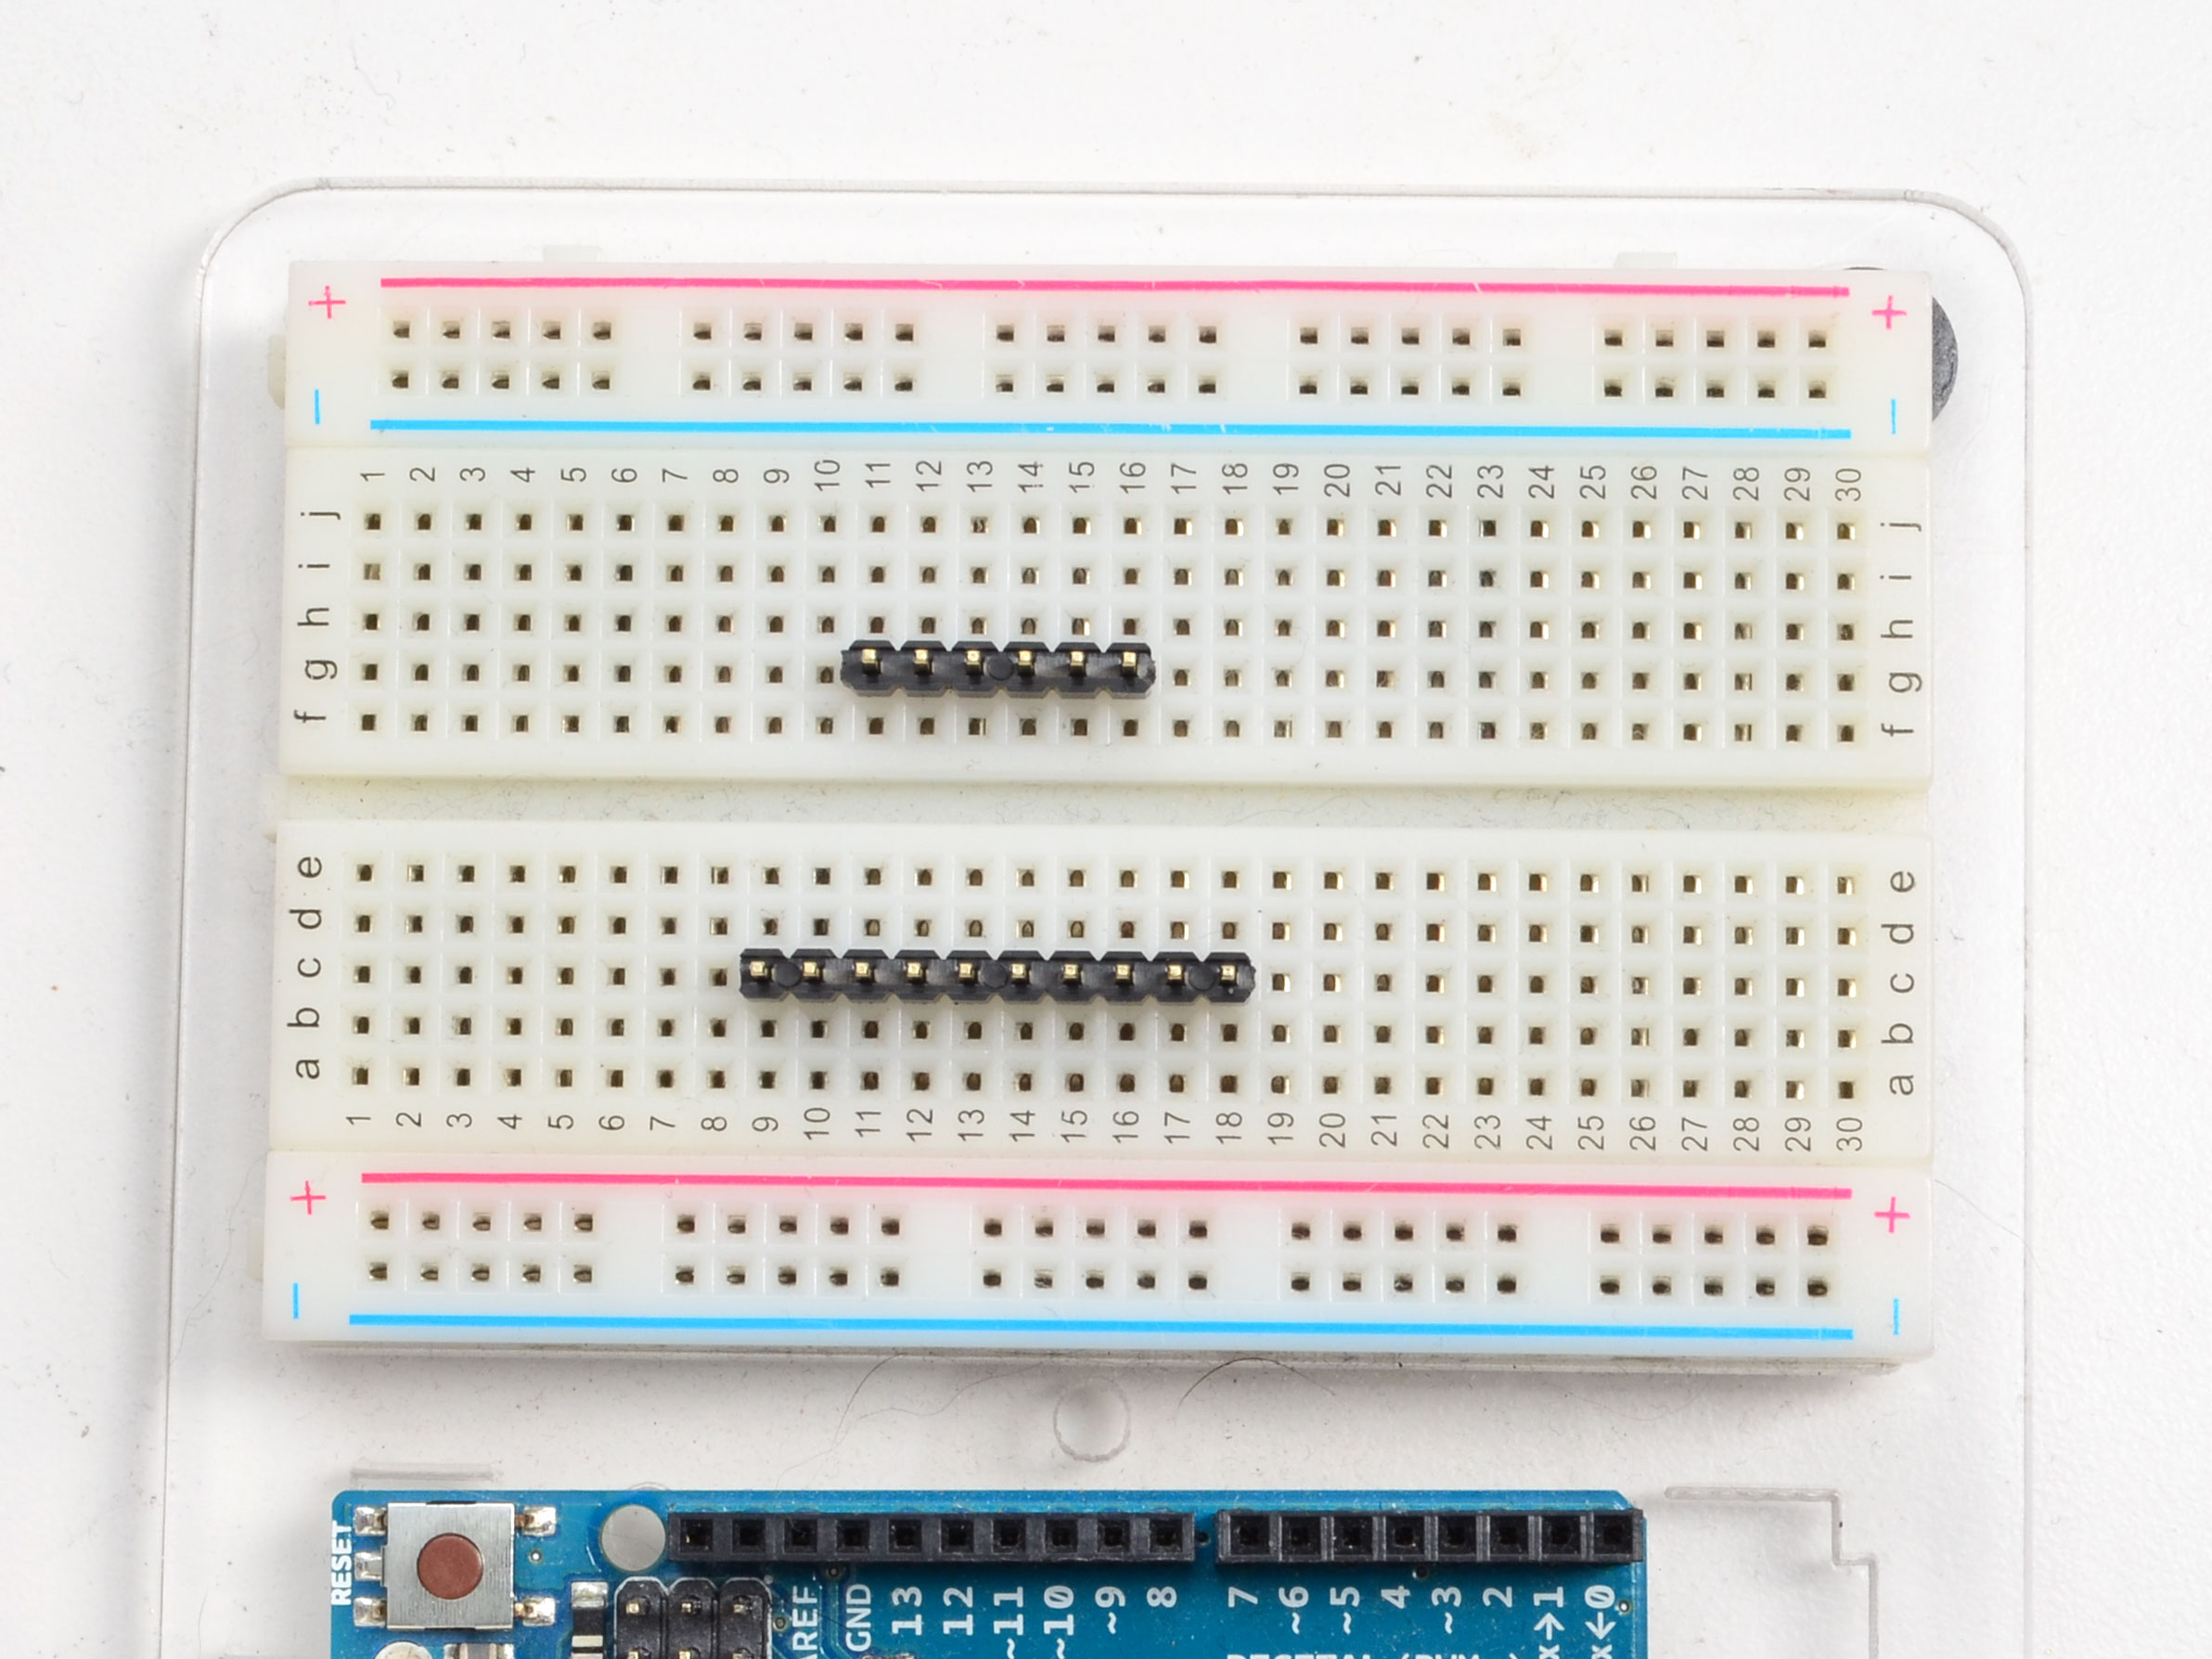 adafruit_products_headers.jpg